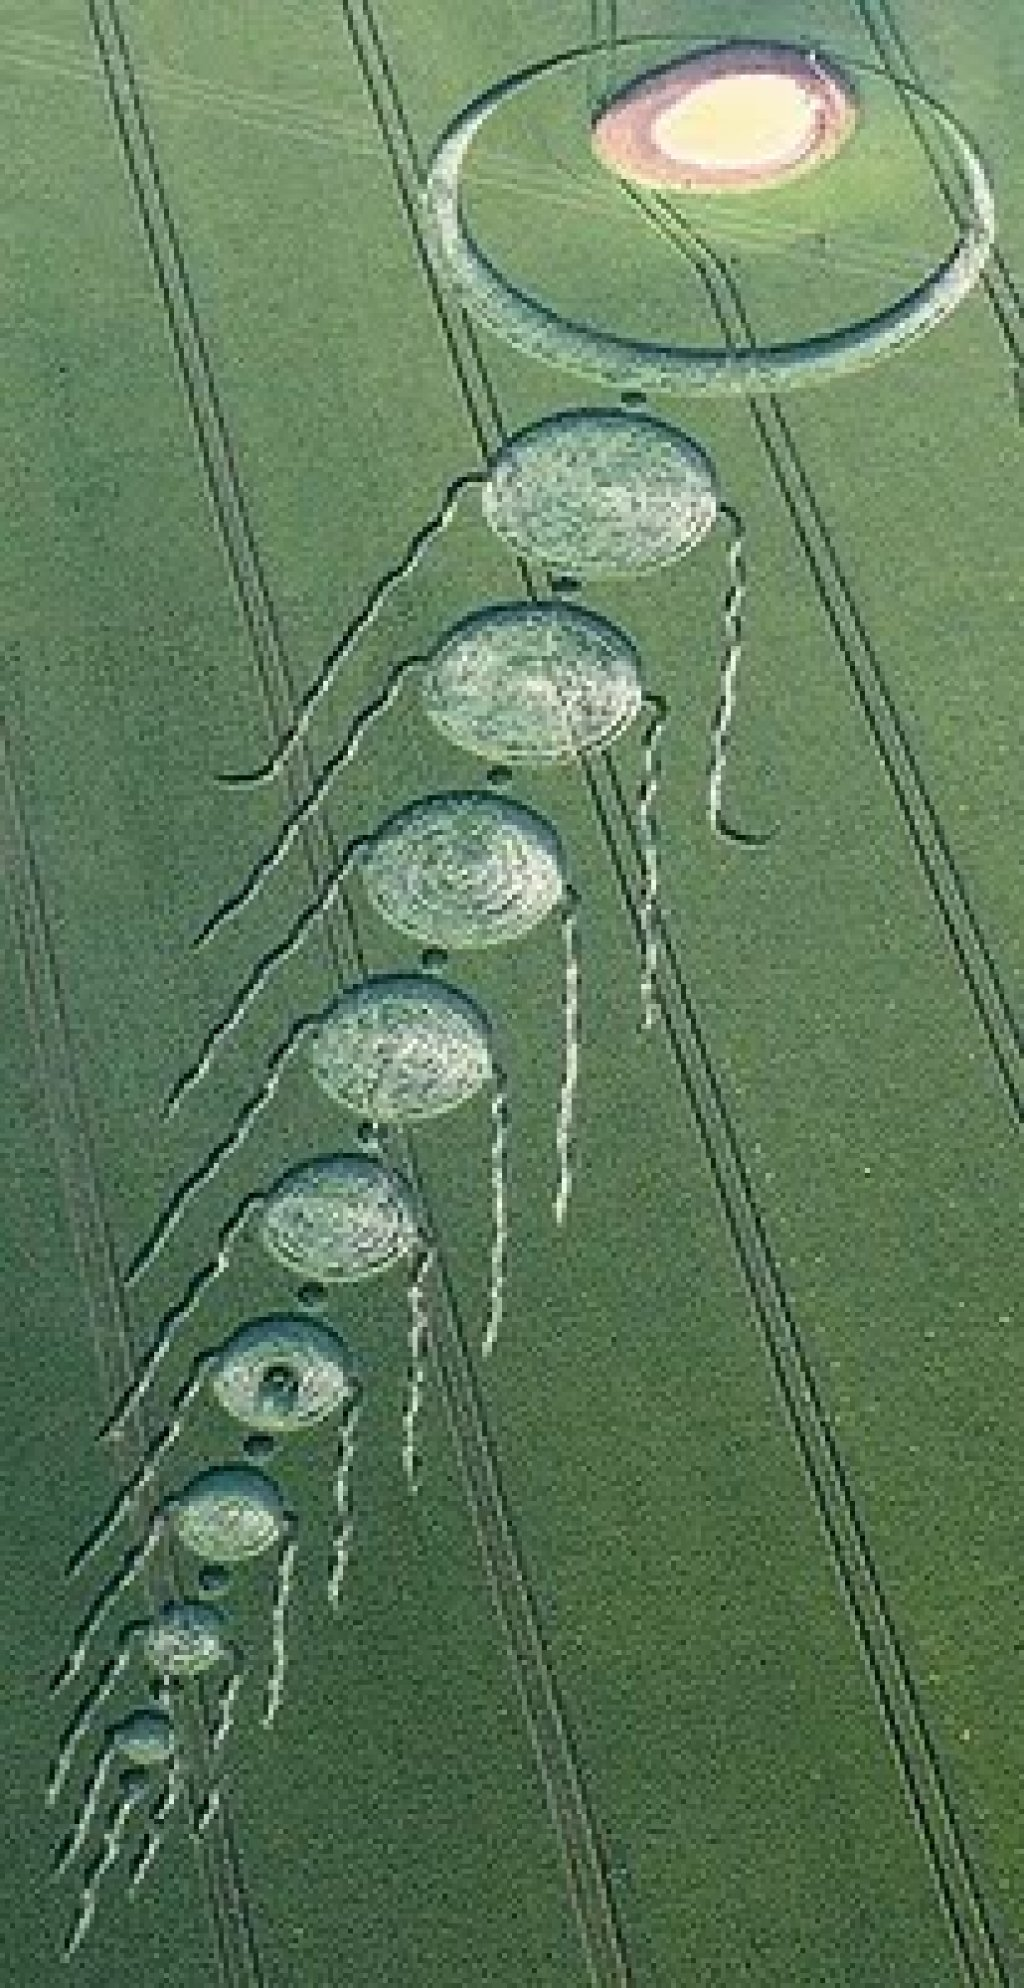 Amazing inexplicable crop circles